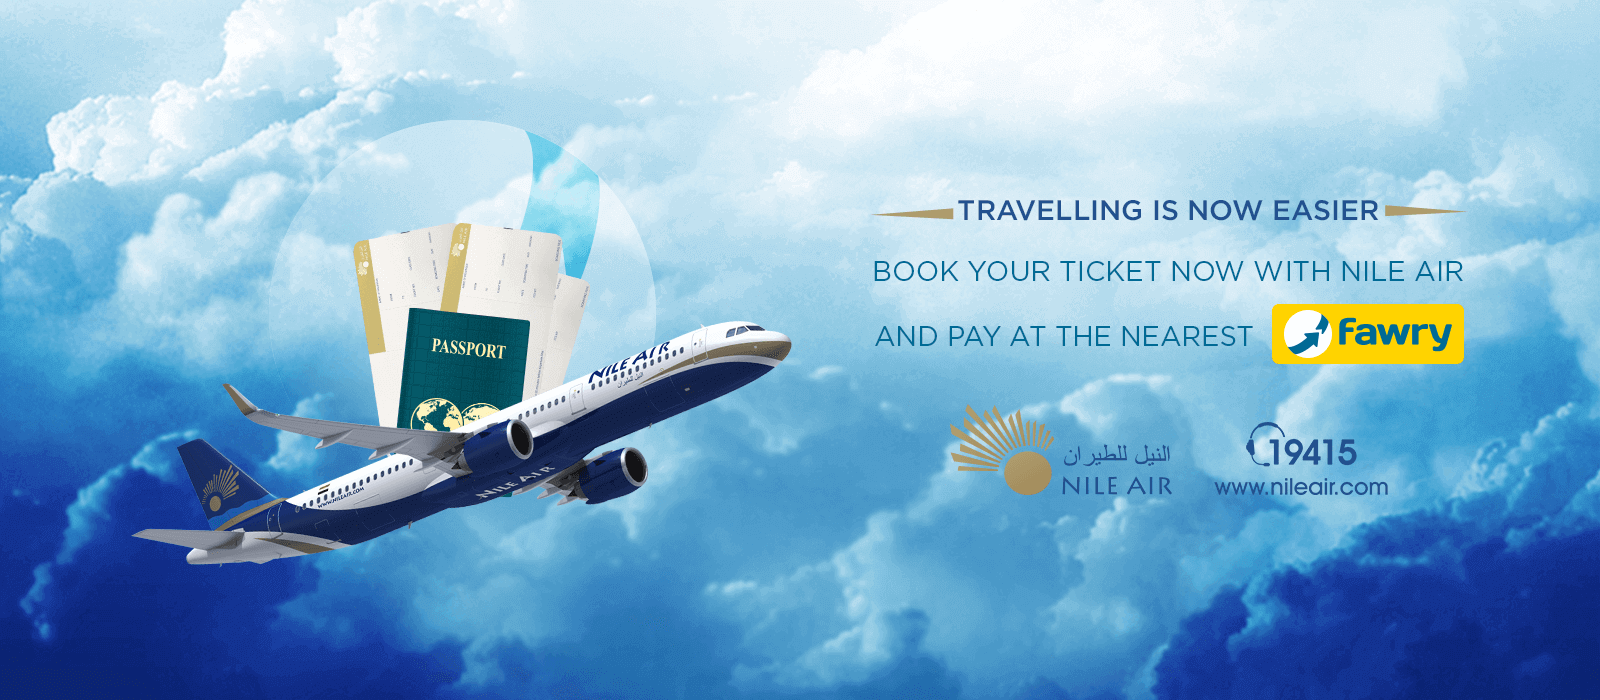 Book Nile Air ticket by Fawry